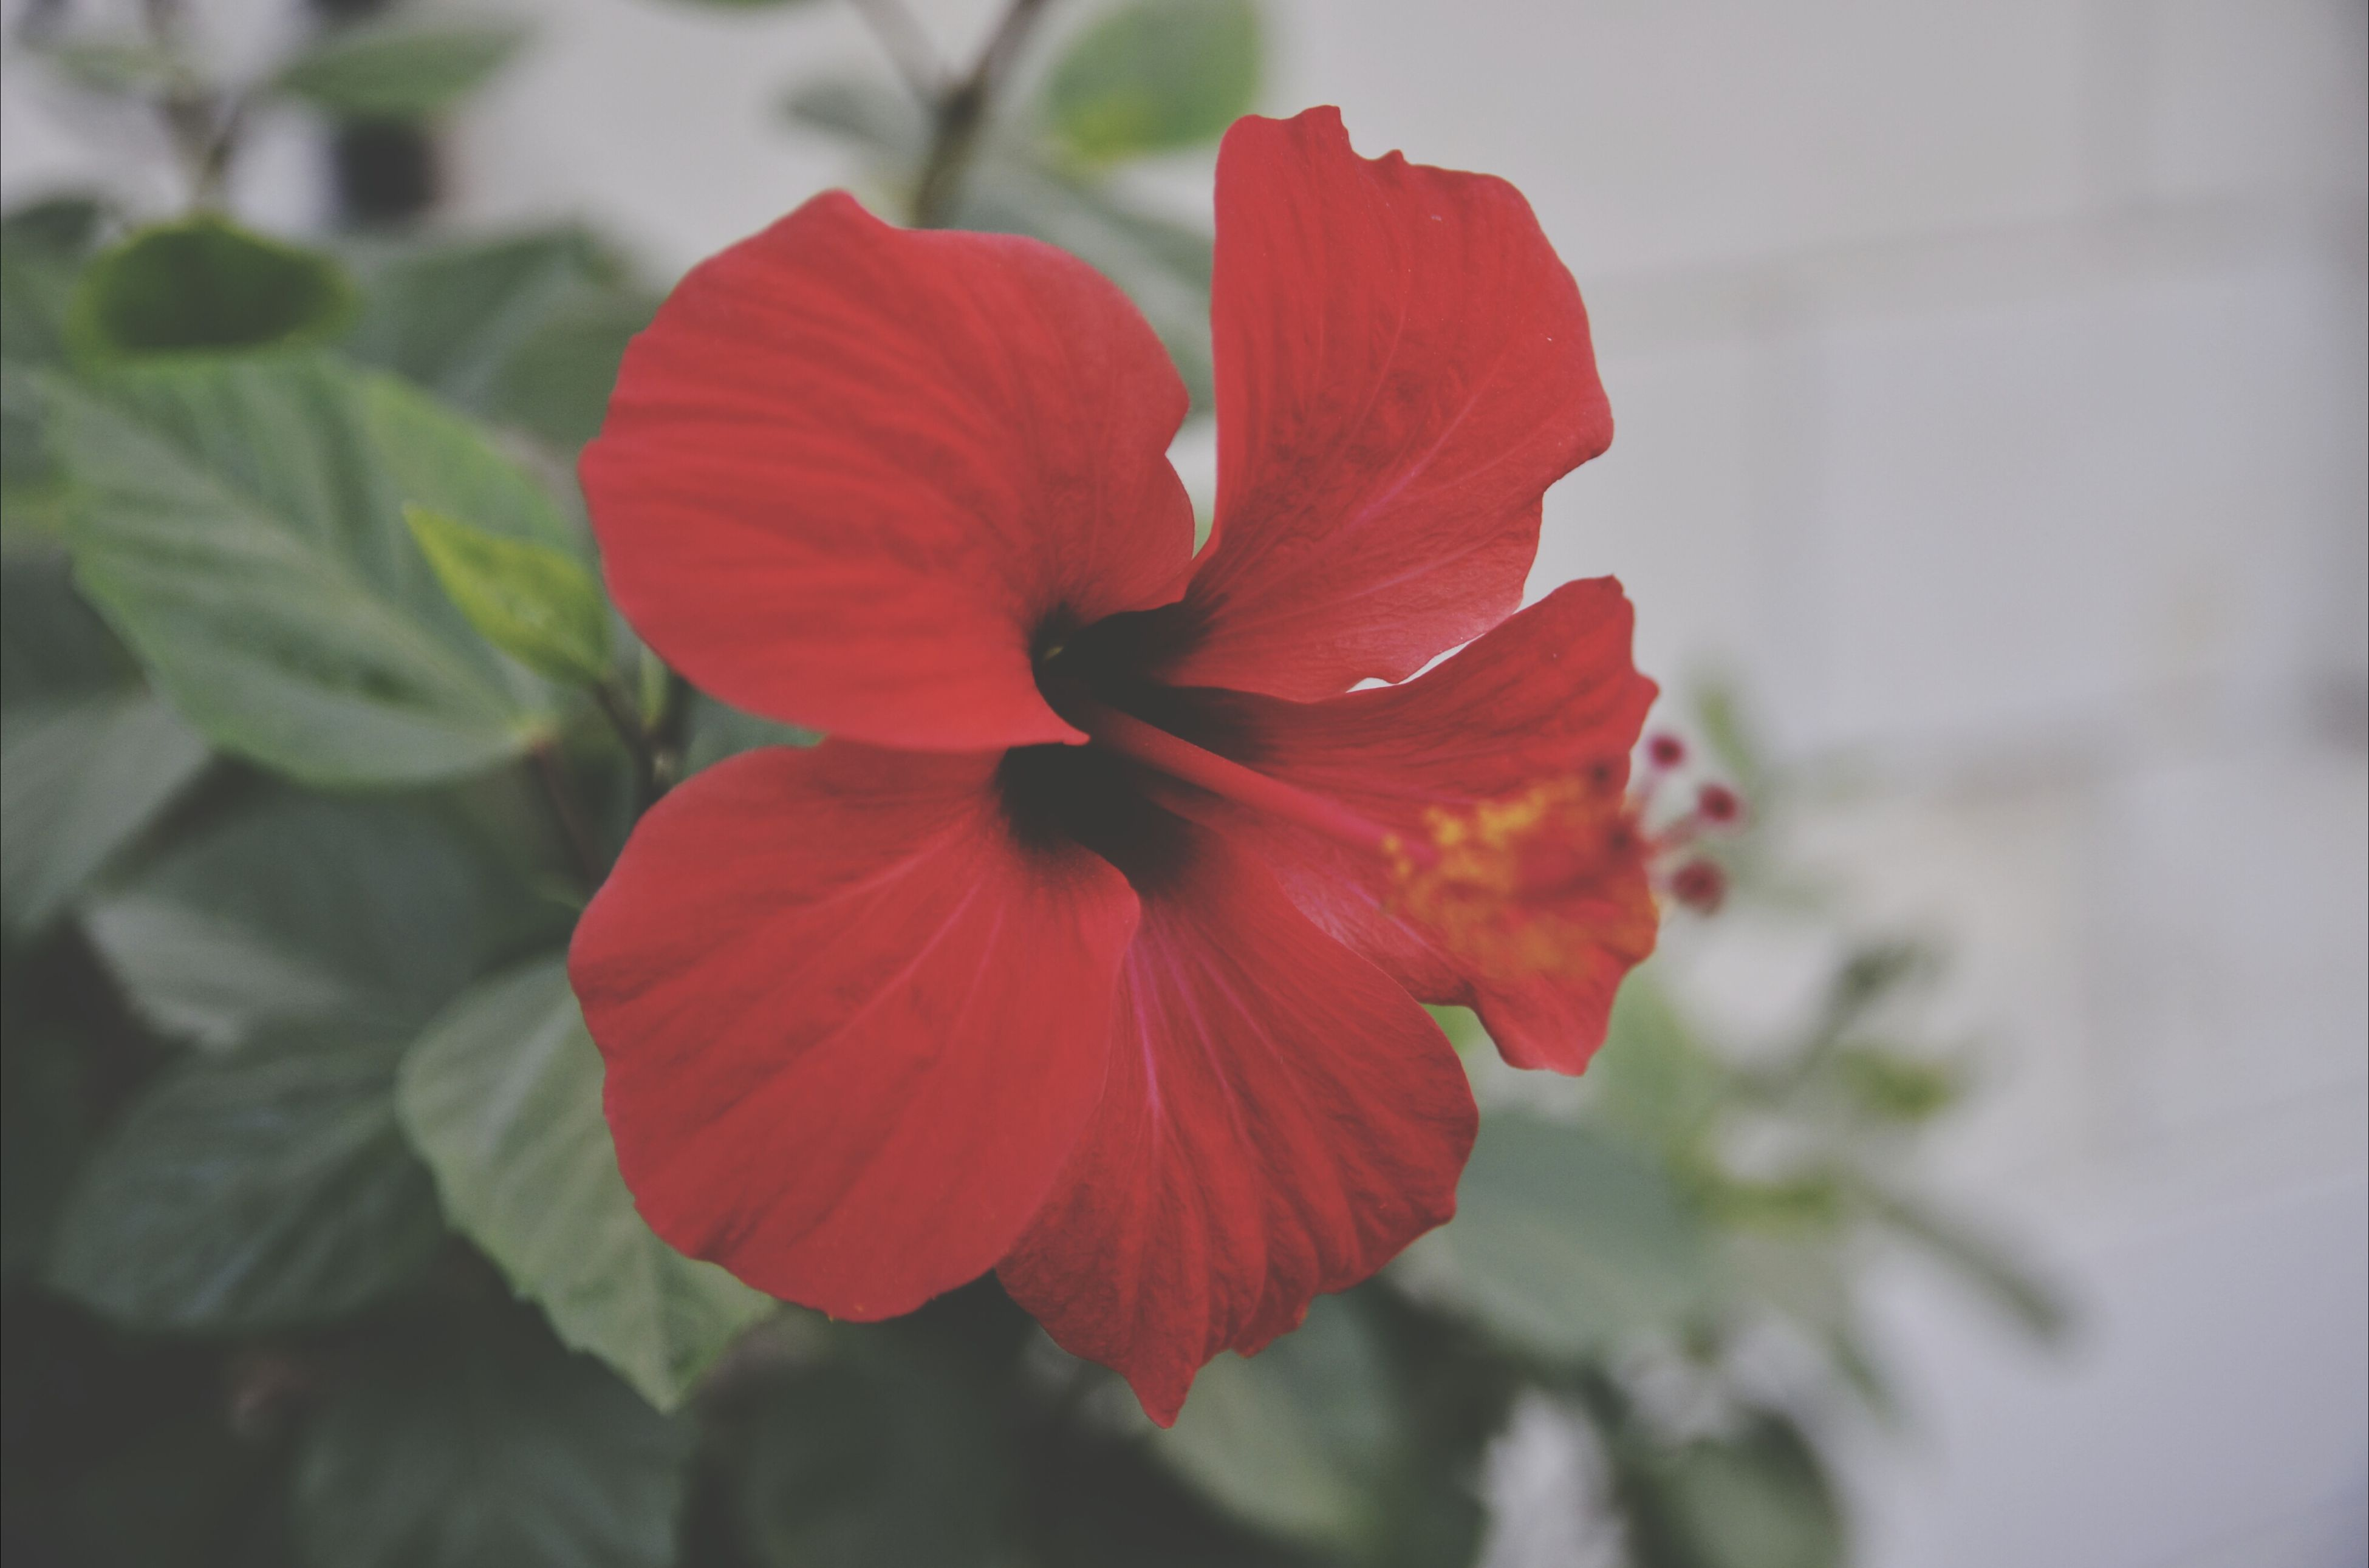 flower, petal, flower head, freshness, fragility, red, growth, single flower, beauty in nature, close-up, blooming, focus on foreground, plant, nature, hibiscus, pollen, in bloom, stamen, day, no people